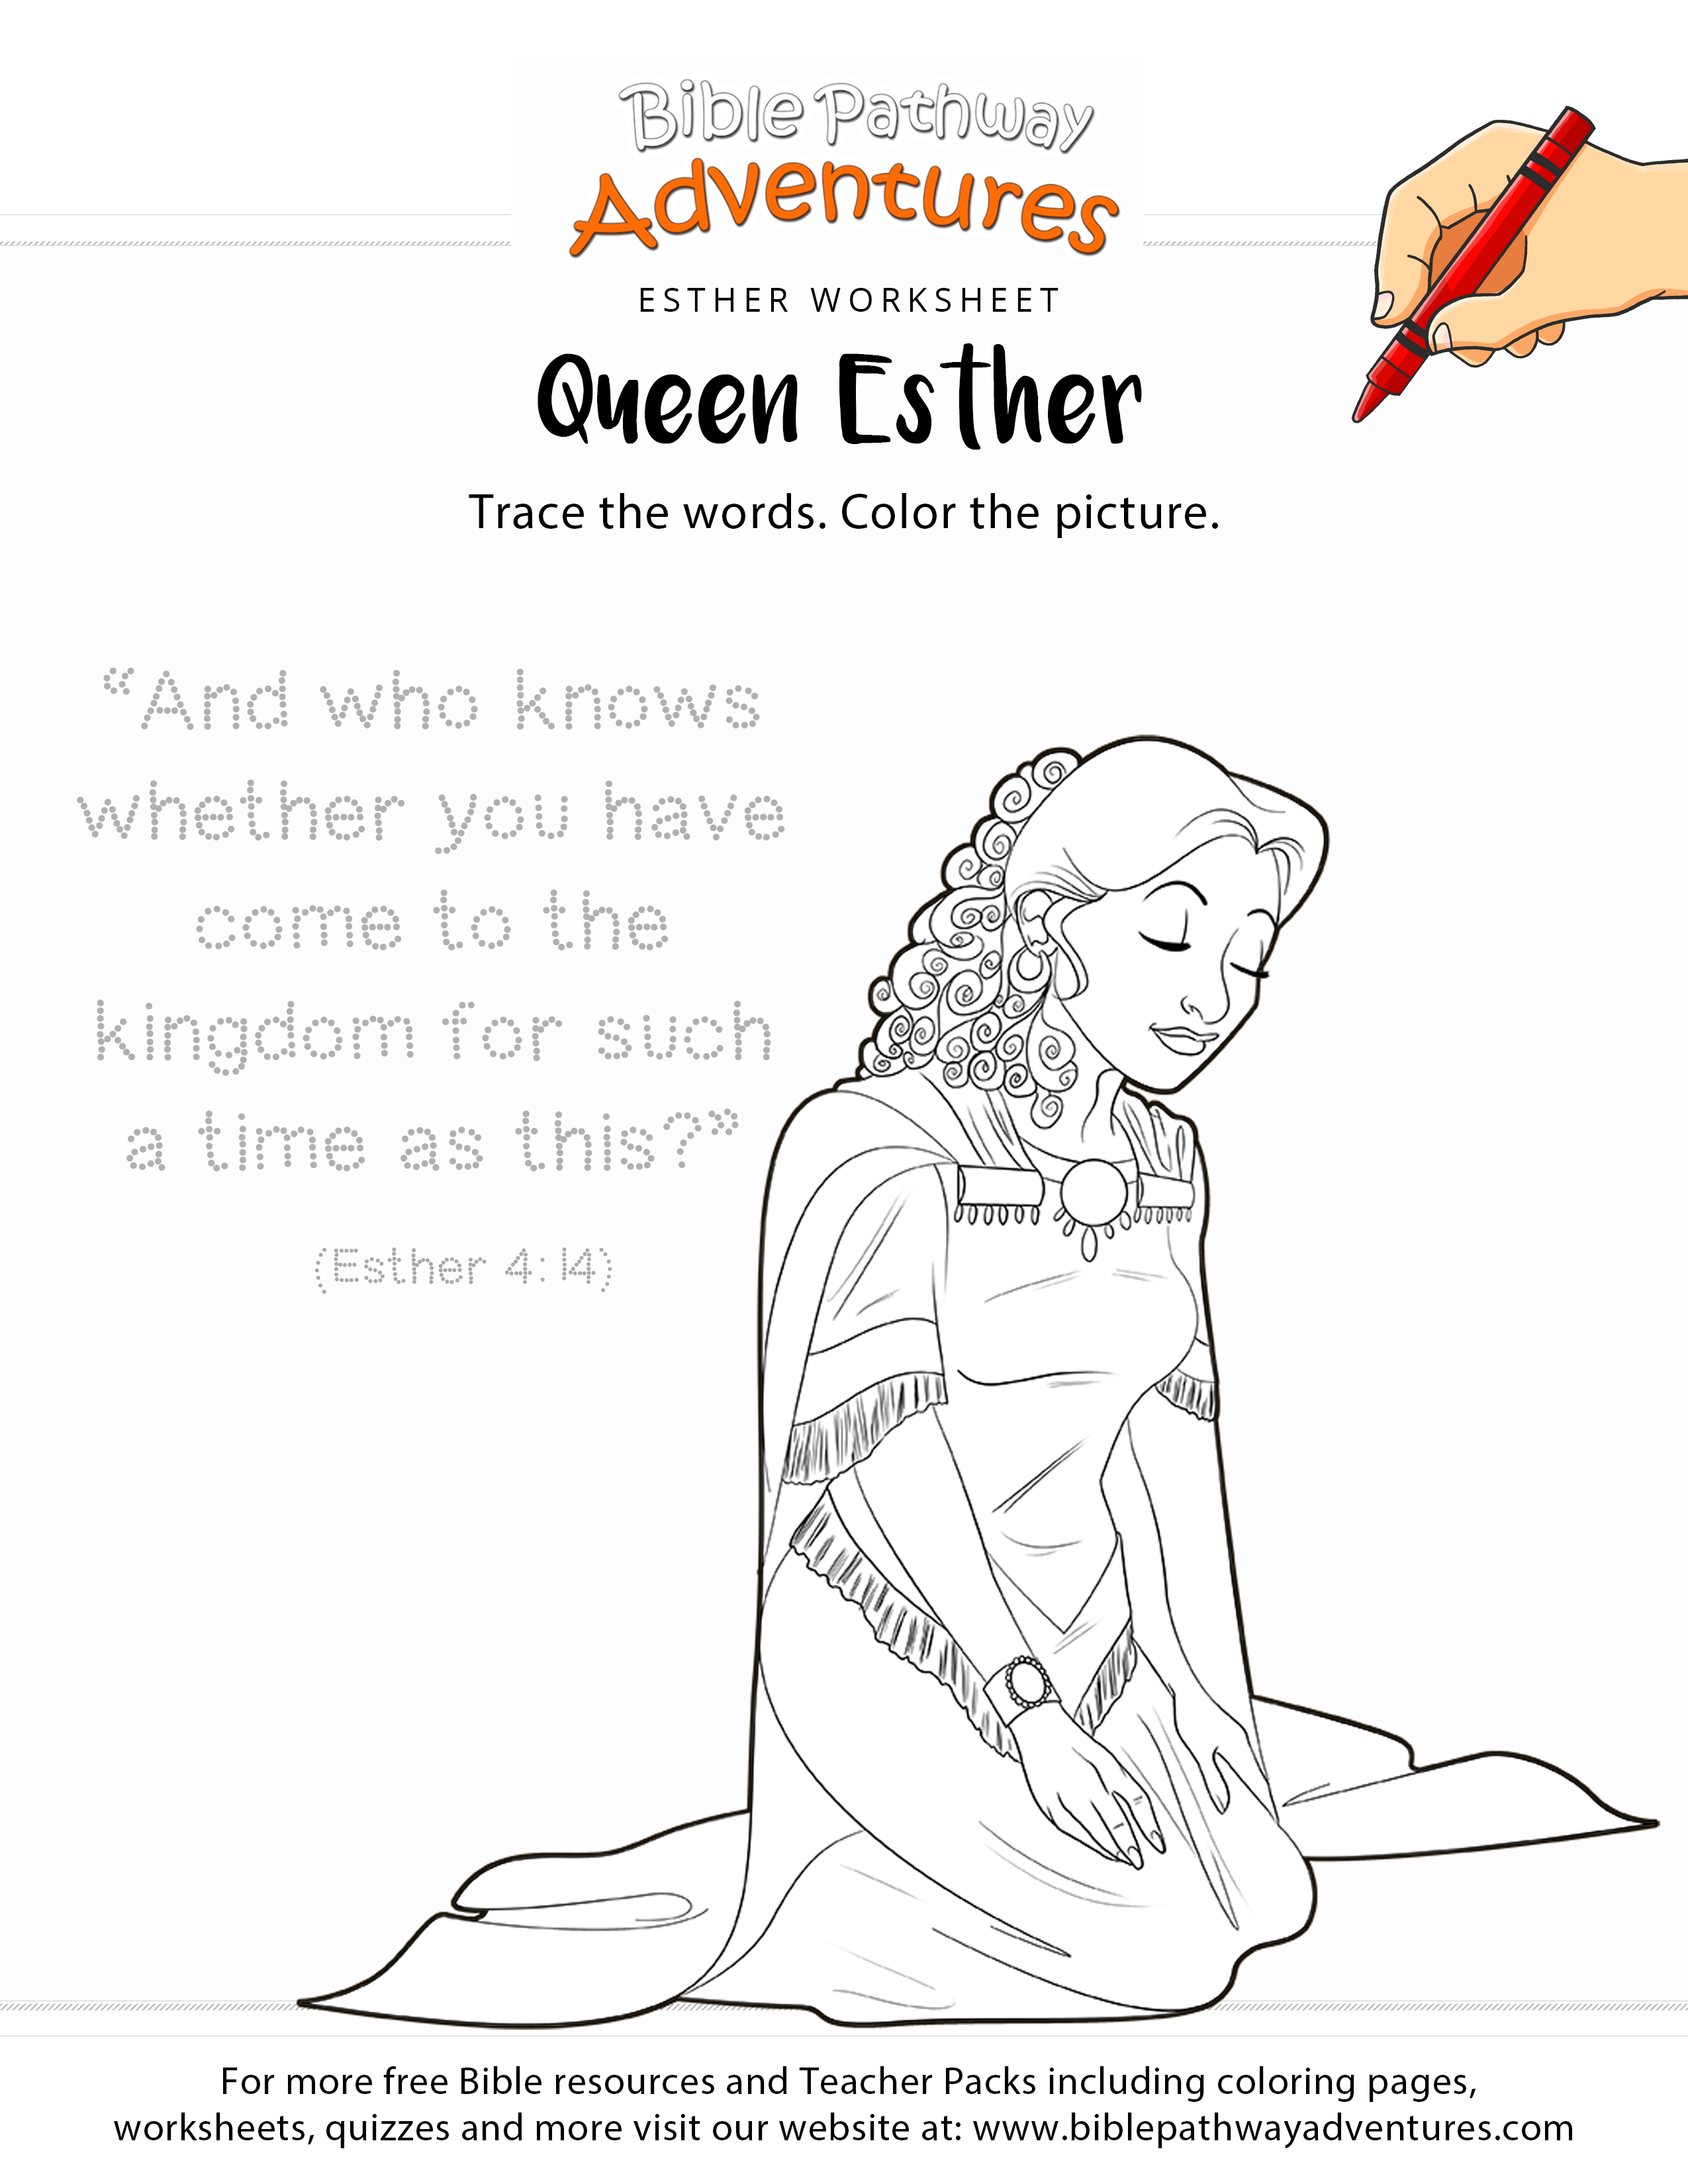 Esther copywork and coloring page | Esther bible, Bible activities ...